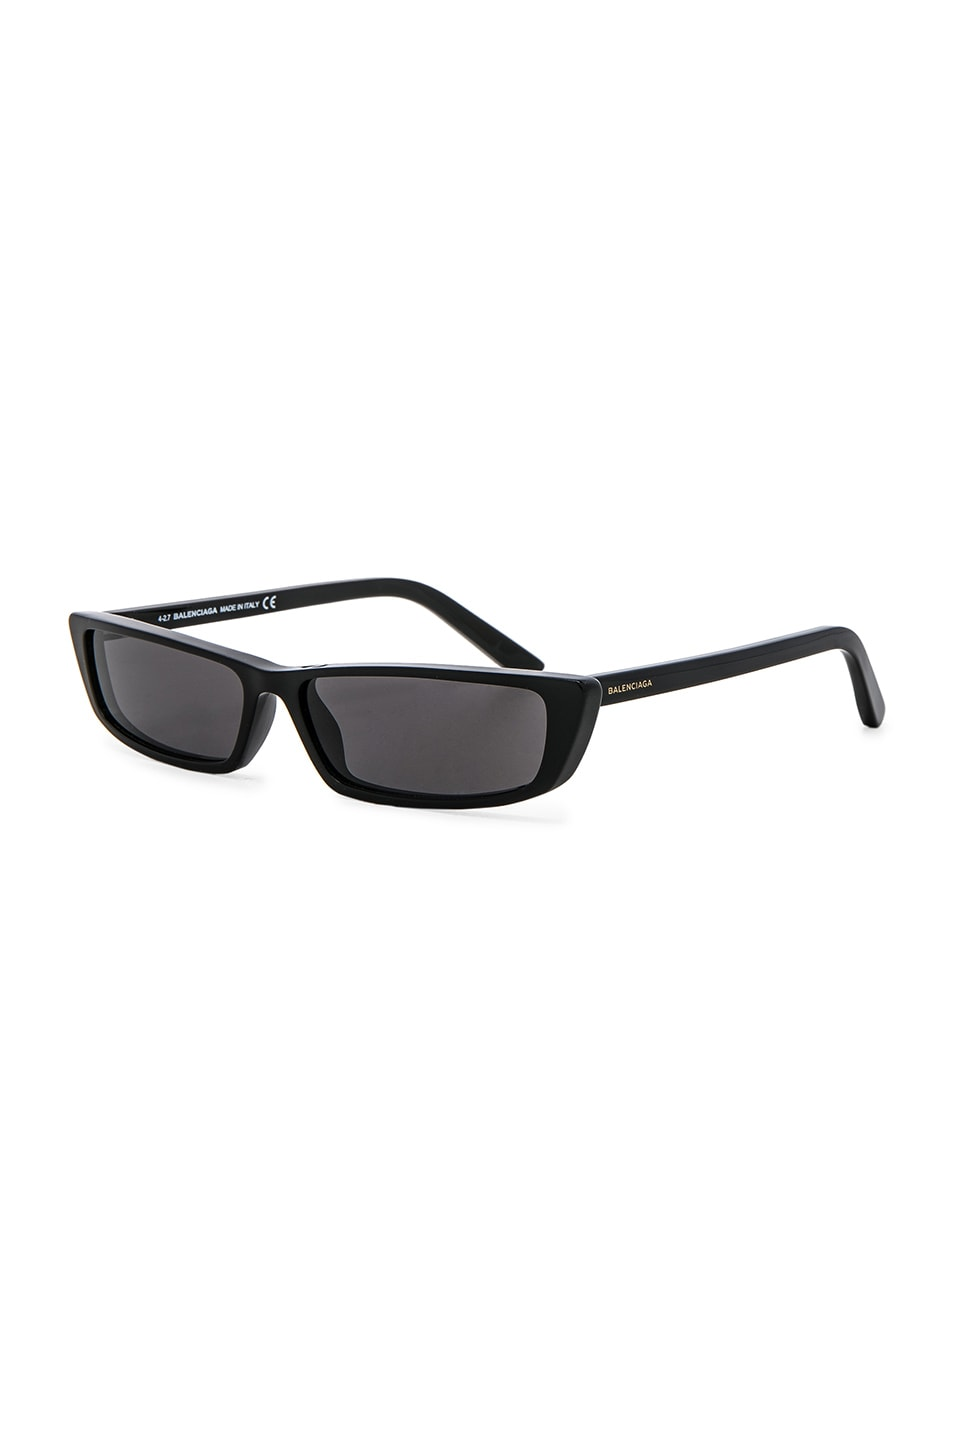 Image 2 of Balenciaga Narrow Cat Eye Sunglasses in Shiny Black & Smoke Lenses